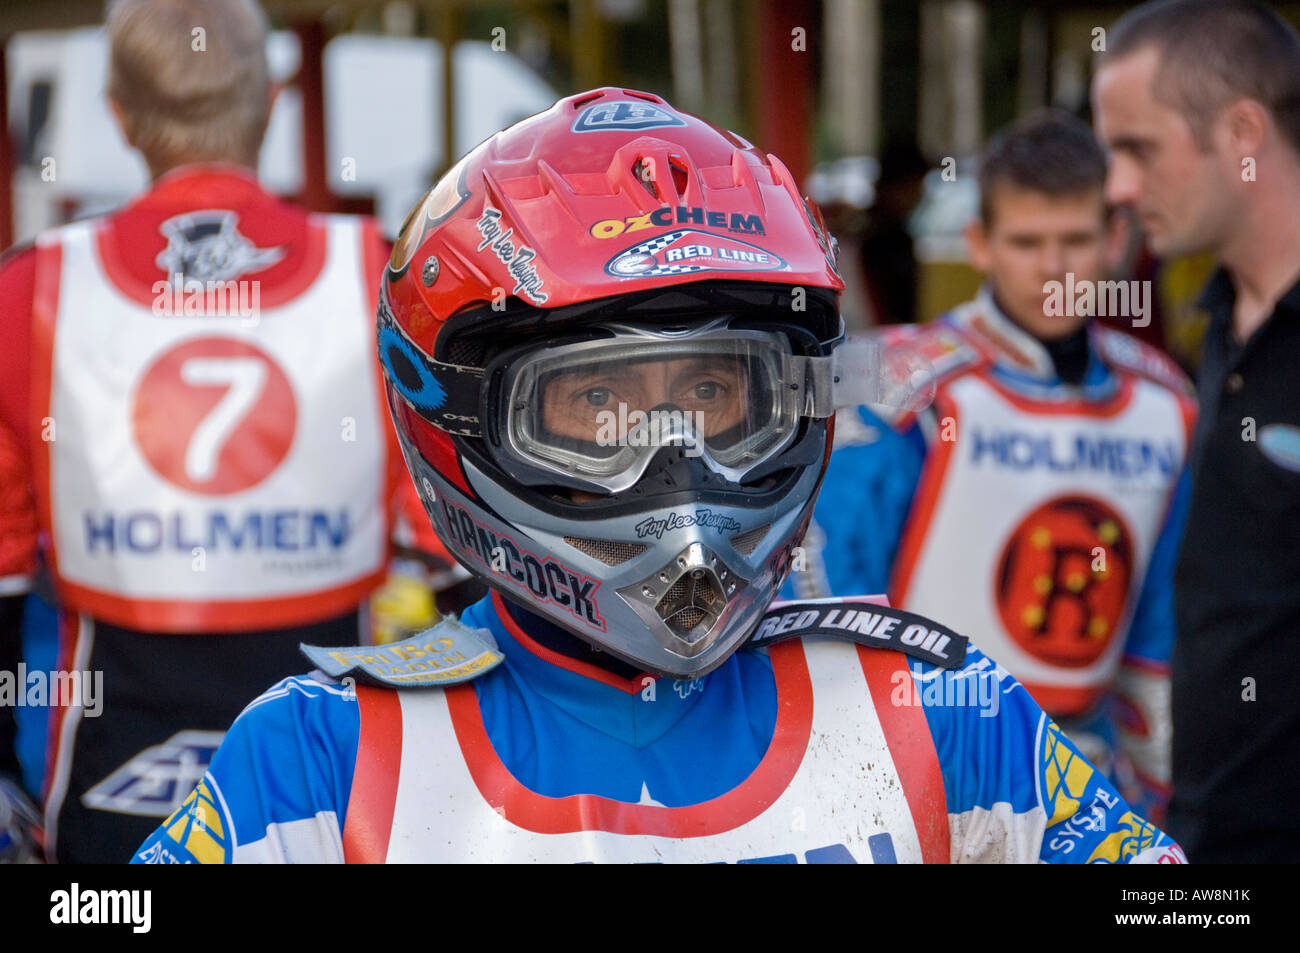 Speedway star American Greg Hancock geared up before the start of a race - Stock Image